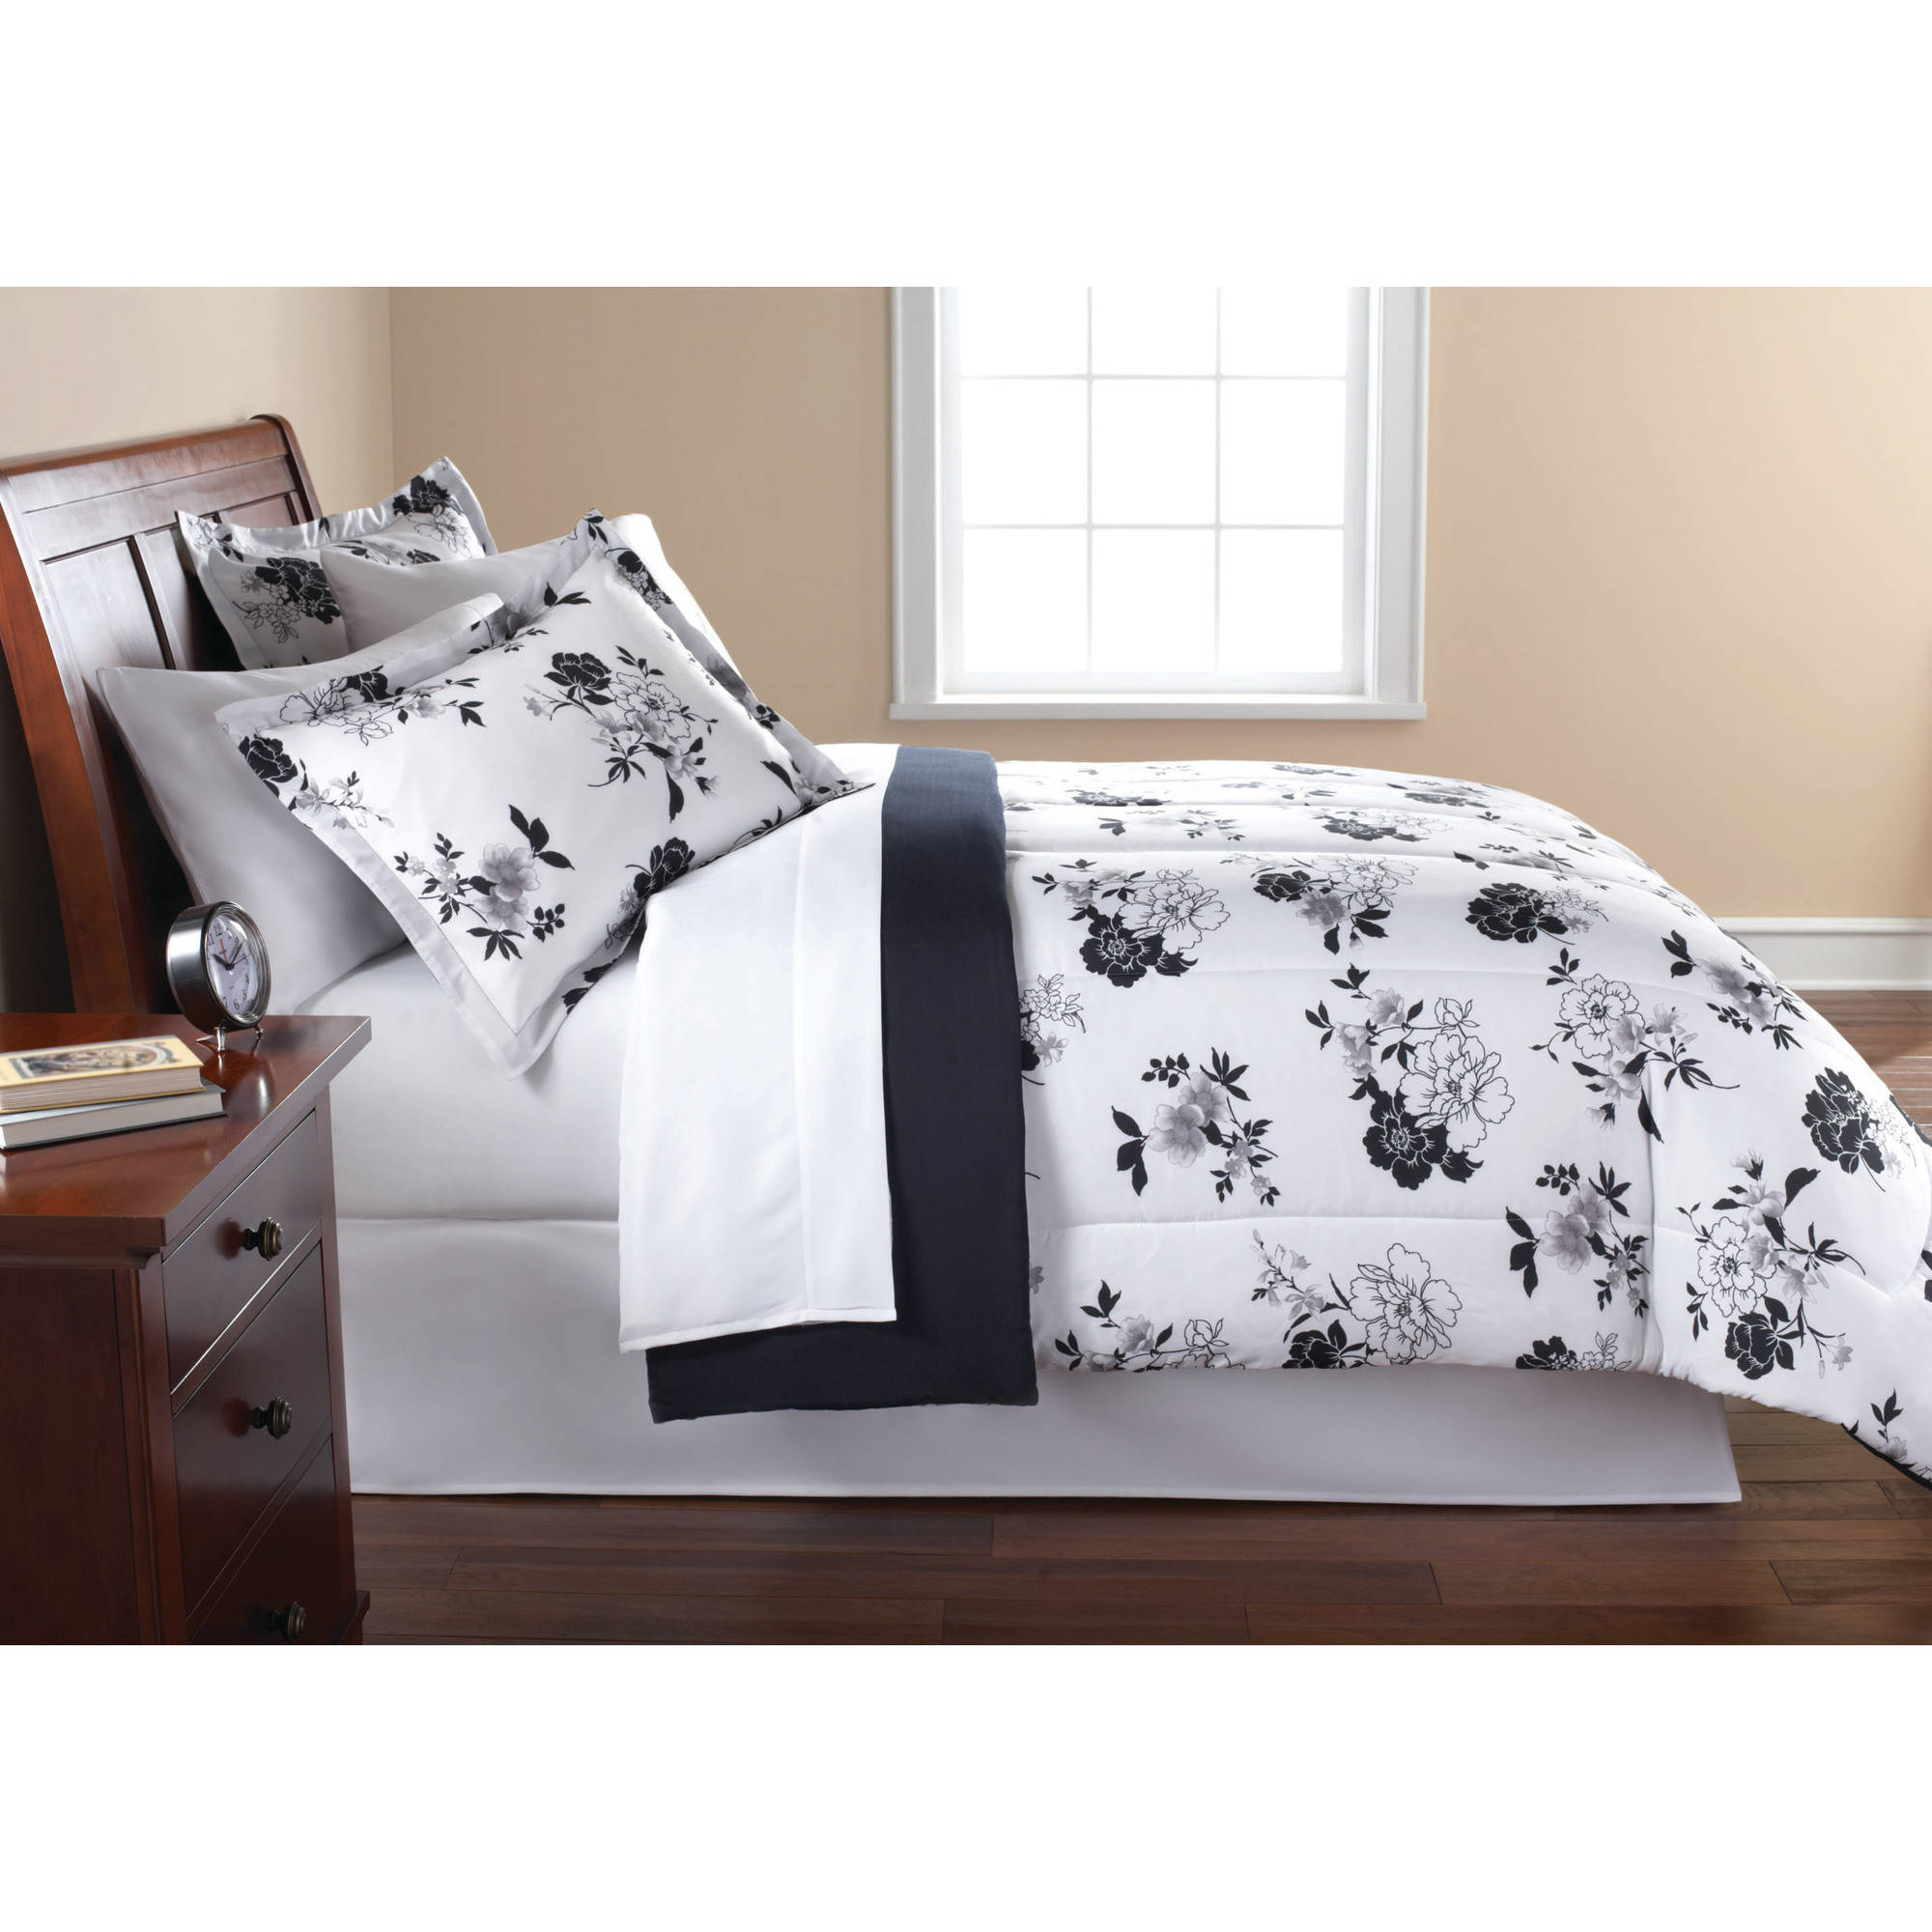 quilt king queen double super luxton duvet black white rossier hotel size buy by style striped cover set and